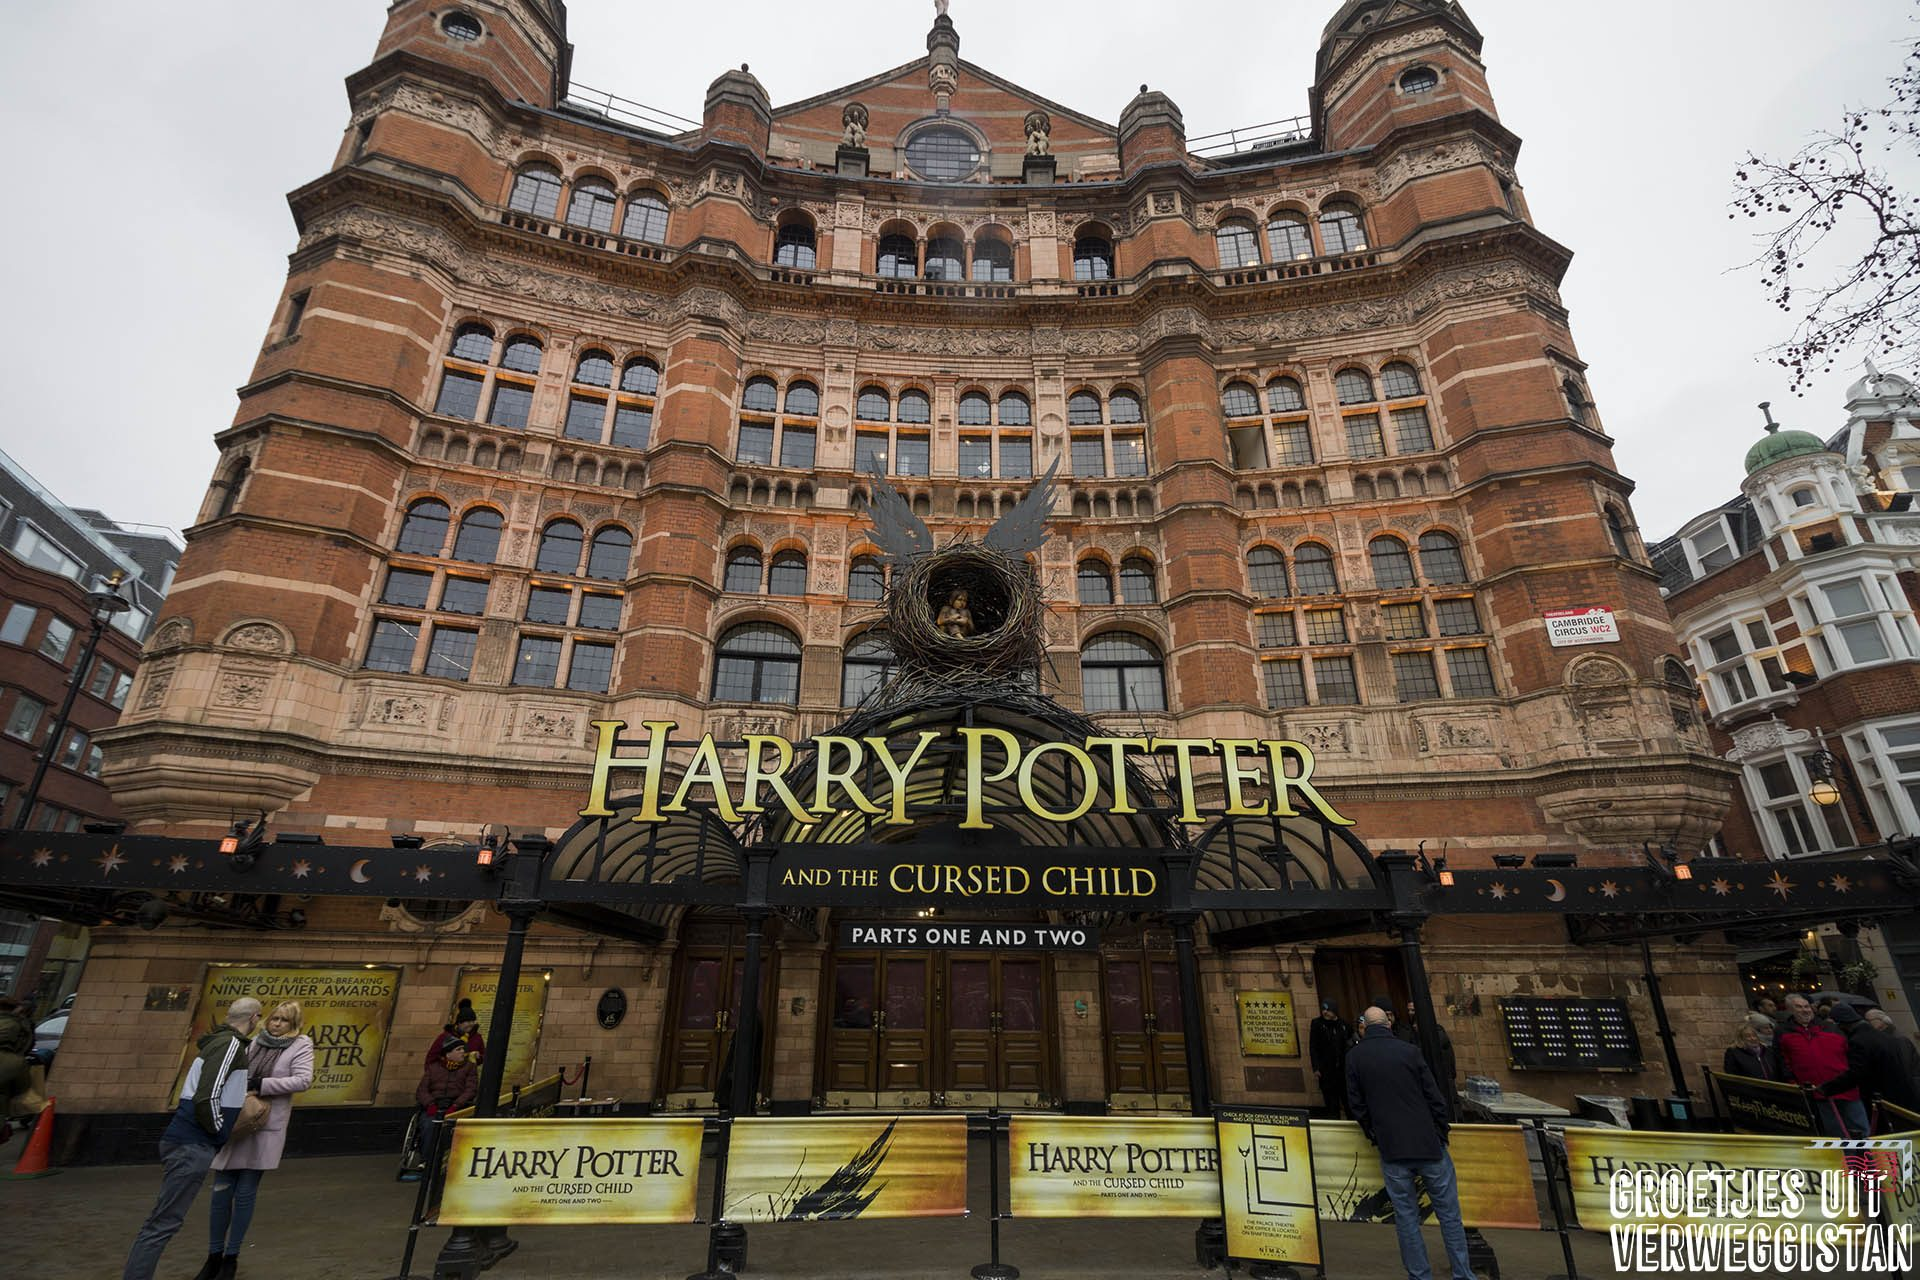 Palace Theater in Londen waar Harry Potter and the Cursed Child speelt met groot logo voorop